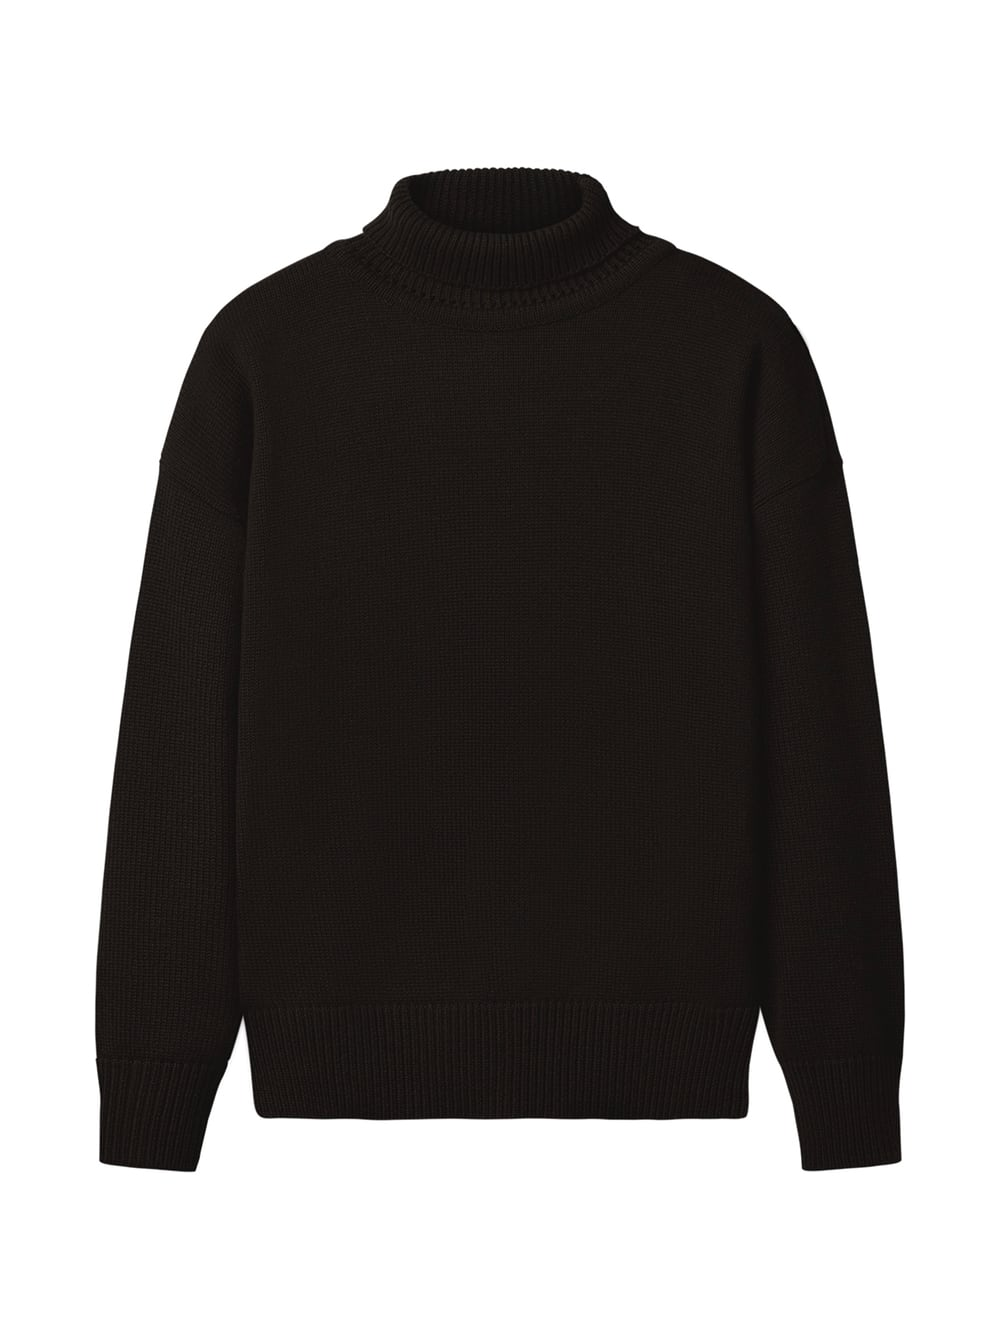 картинка TURTLE NECK SWEATER BLACK - Maltseva Style